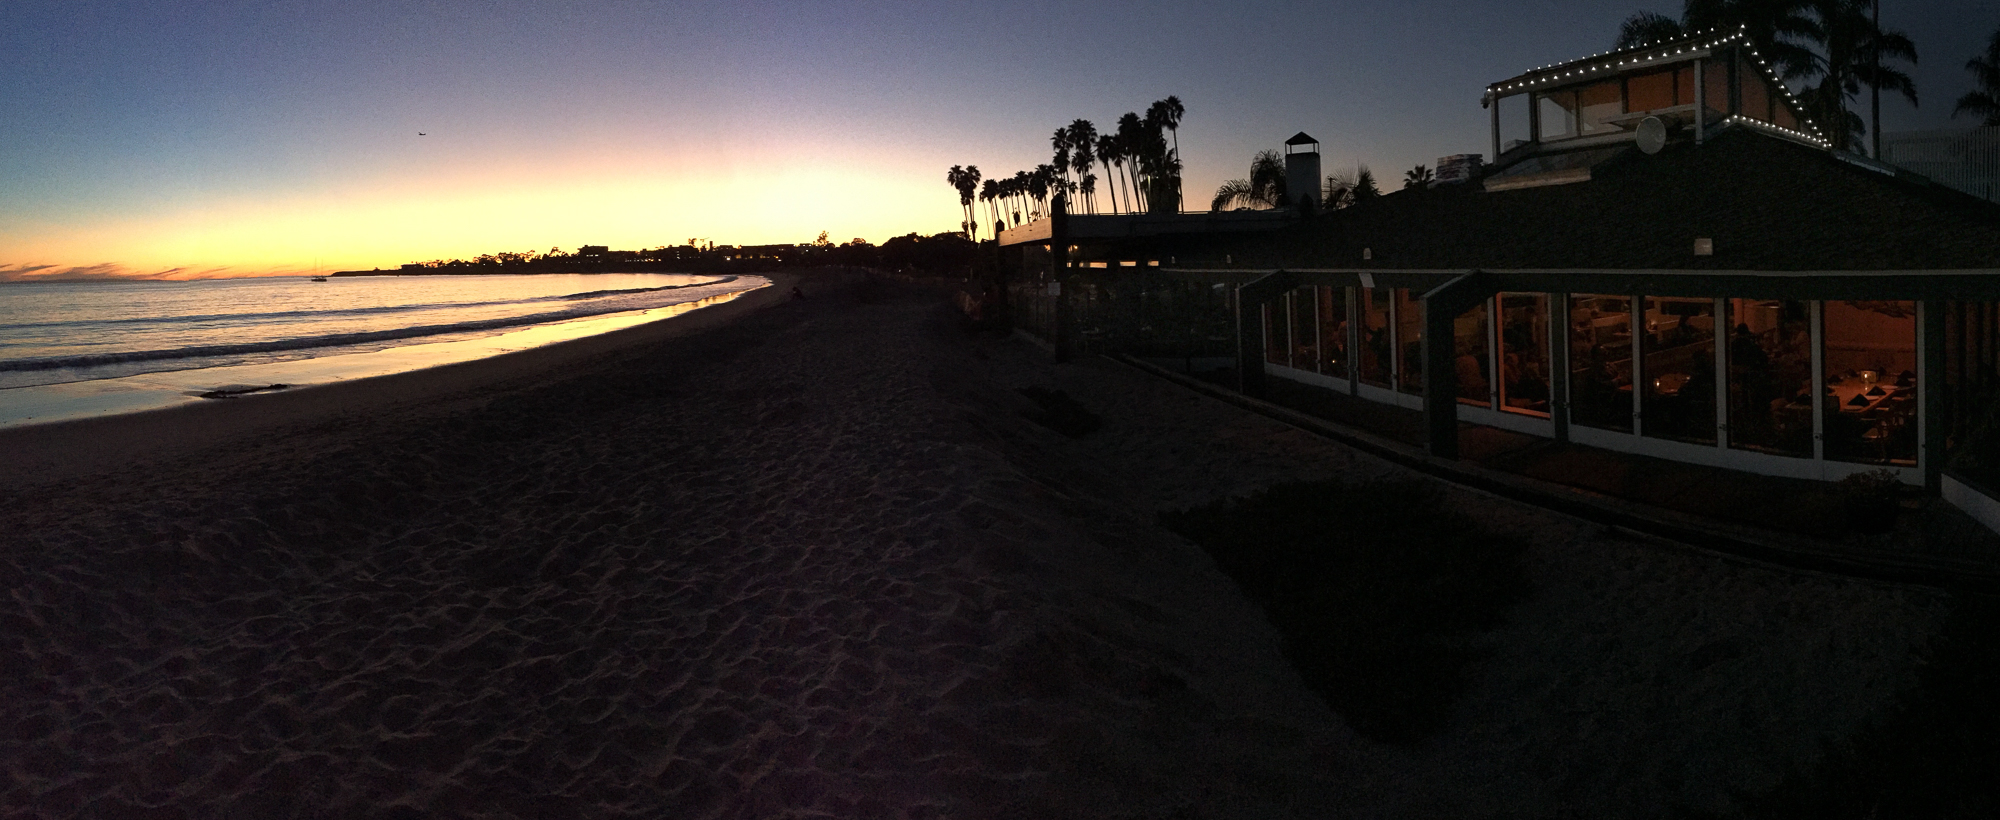 Beachside Restaurant Goleta Sunset, January 2016